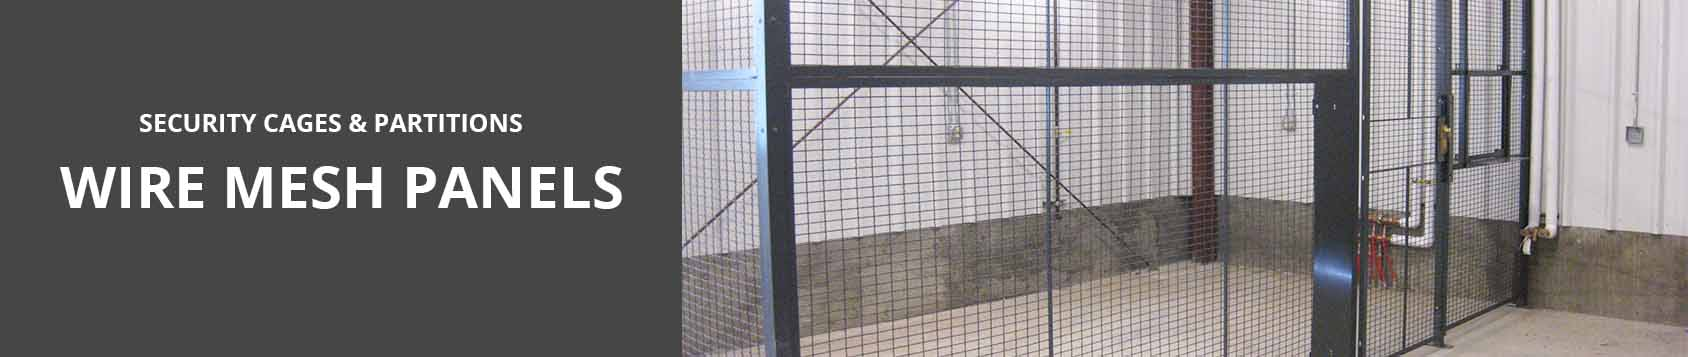 Wire Mesh Panels, Security Cages | Jorgenson Material Handling